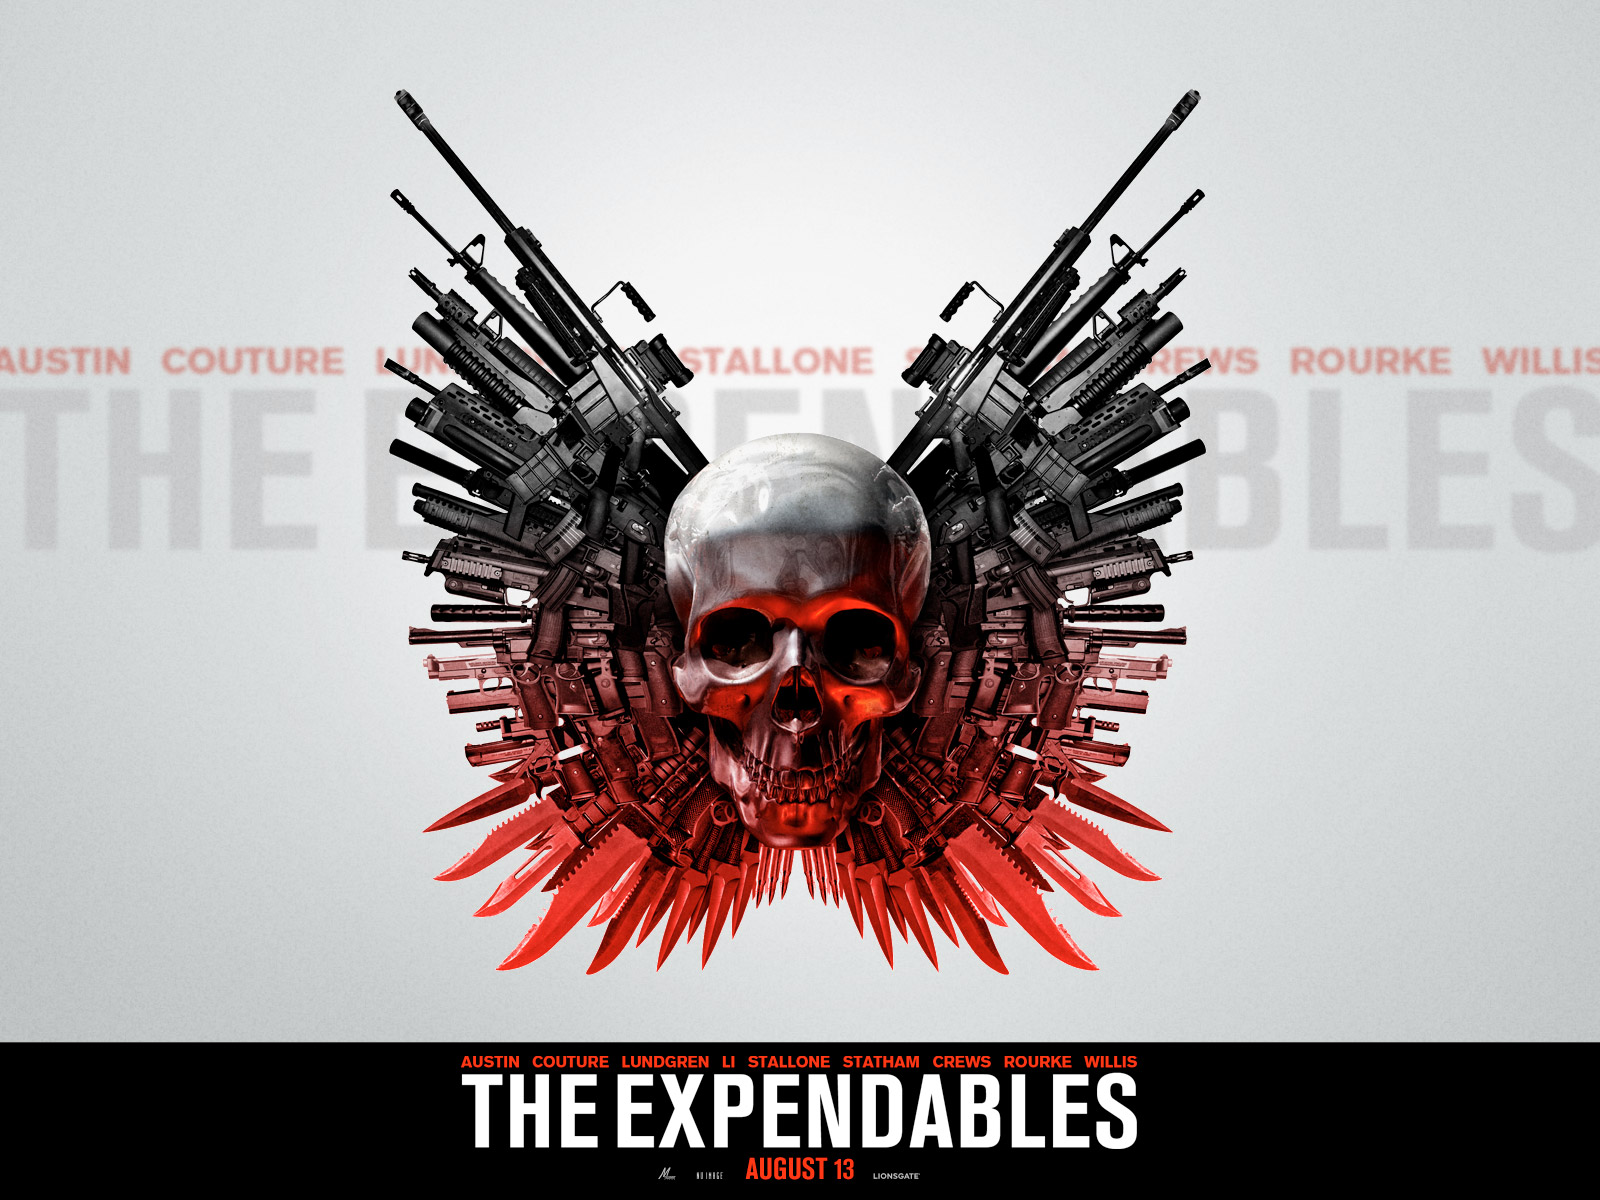 The Expendables movies